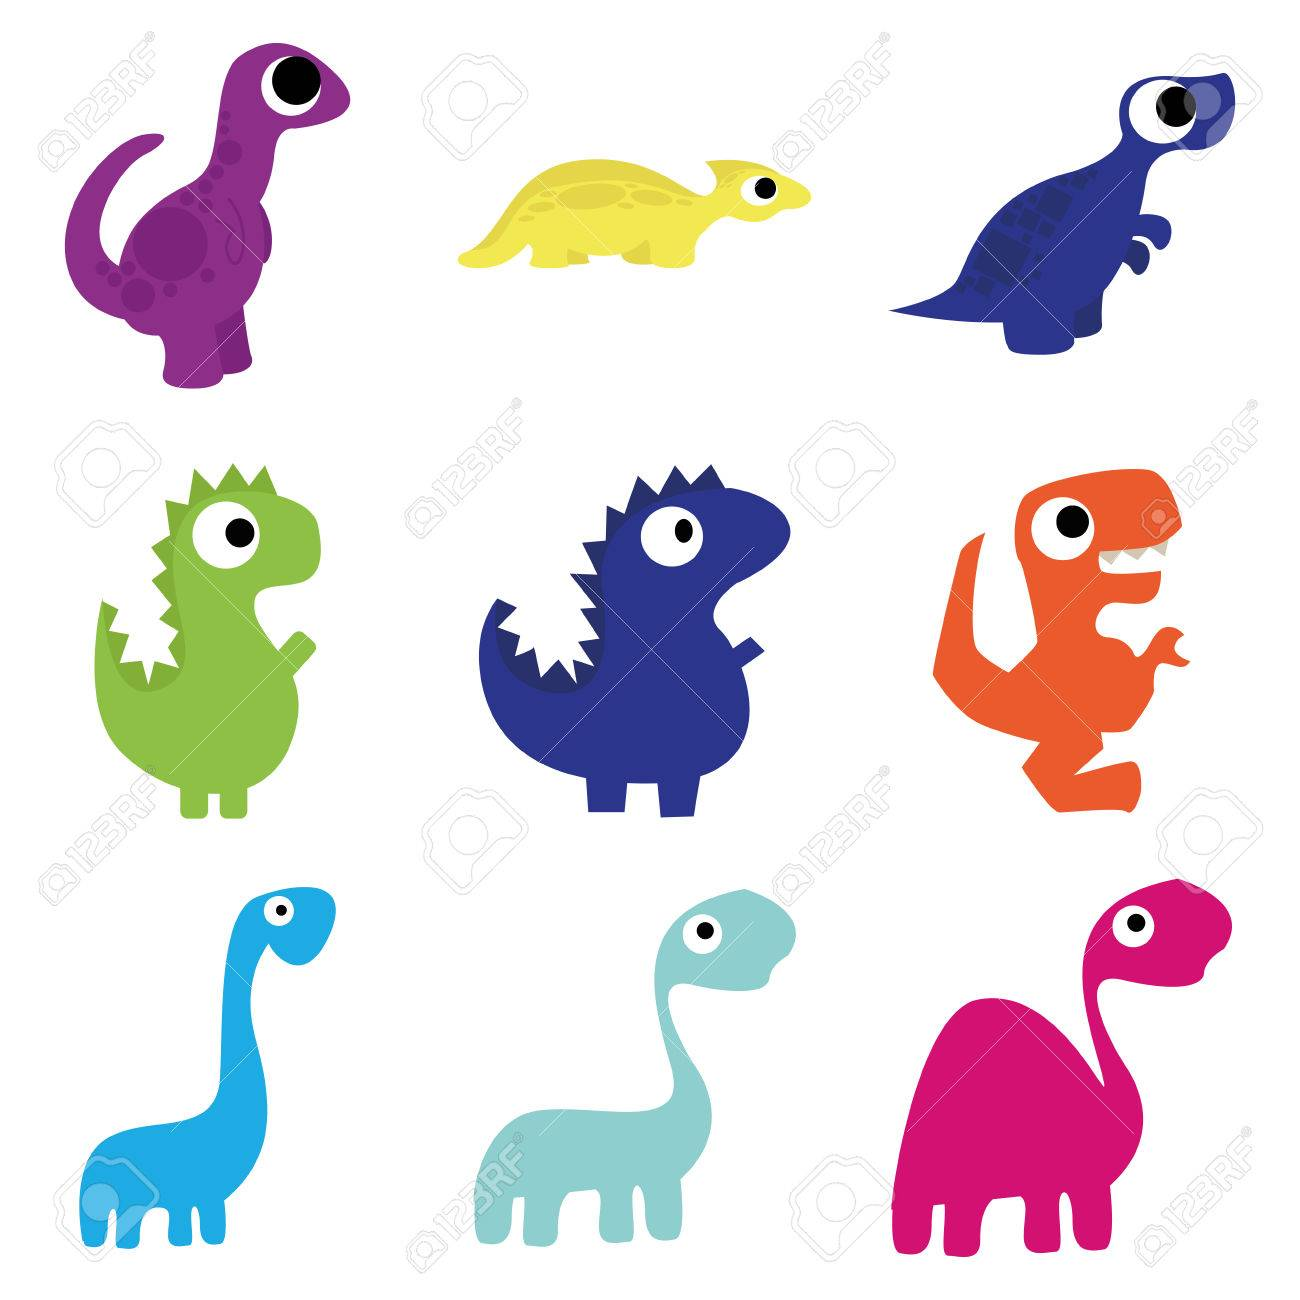 Image of: Little Dino Set Of Different Cute Cartoon Dinosaurs Isolated Stock Vector 27175774 123rfcom Set Of Different Cute Cartoon Dinosaurs Isolated Royalty Free